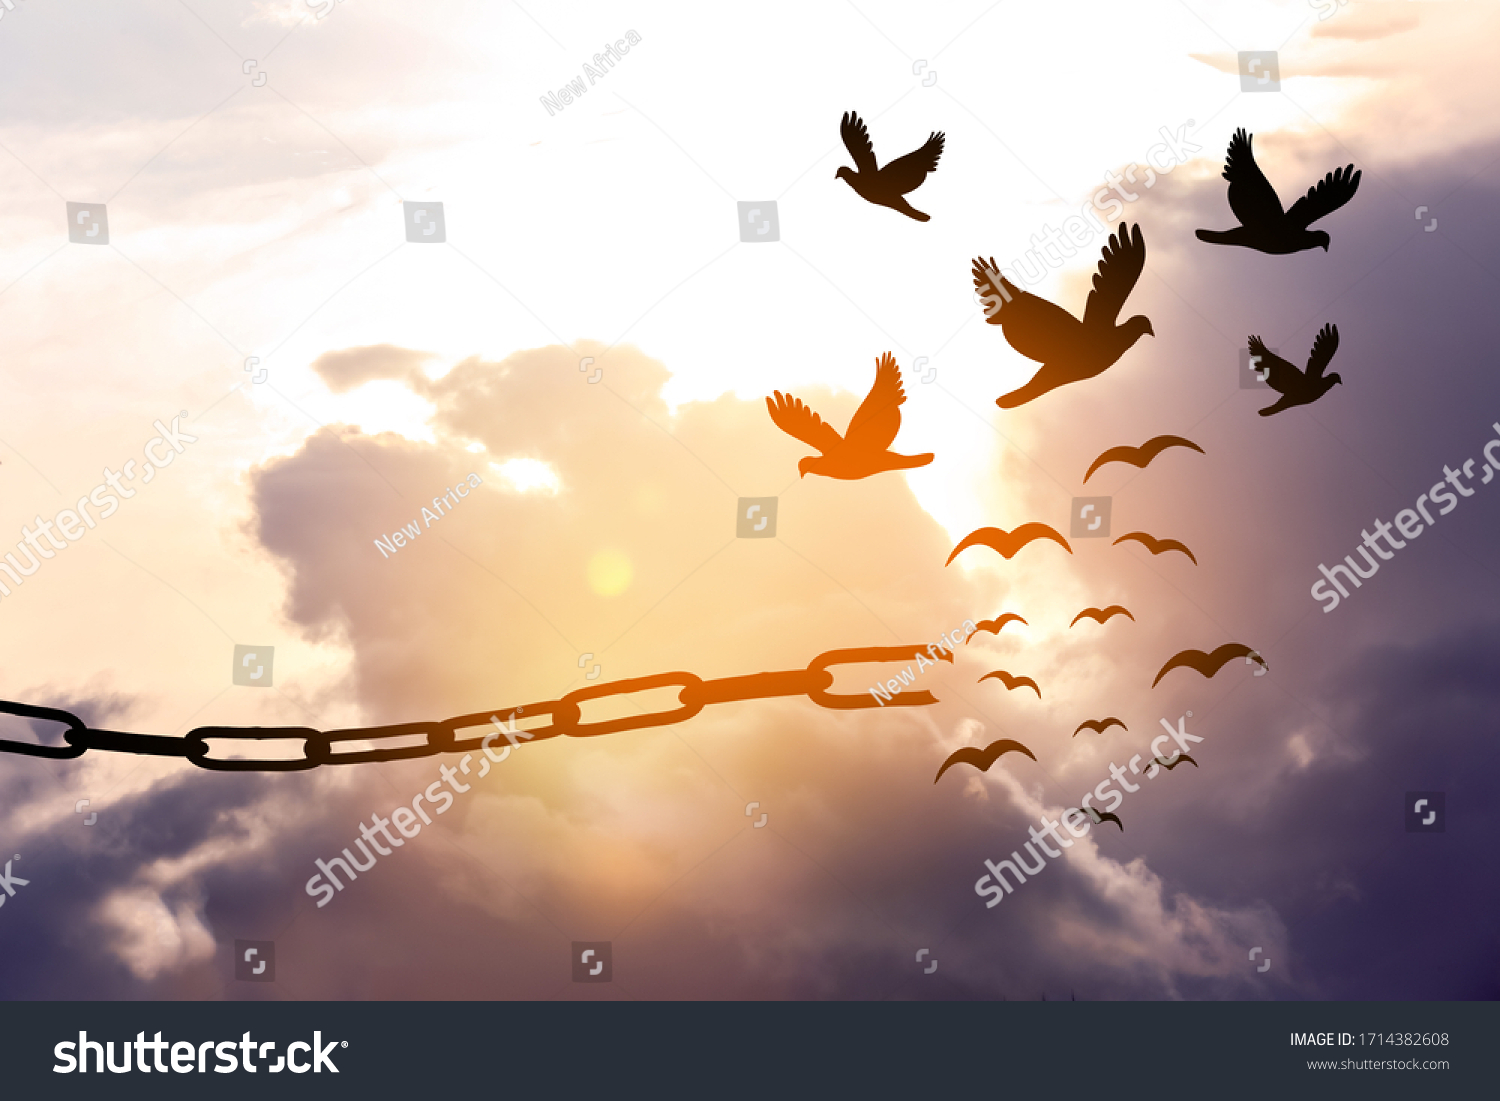 Freedom concept. Silhouettes of broken chain and birds flying in sky #1714382608